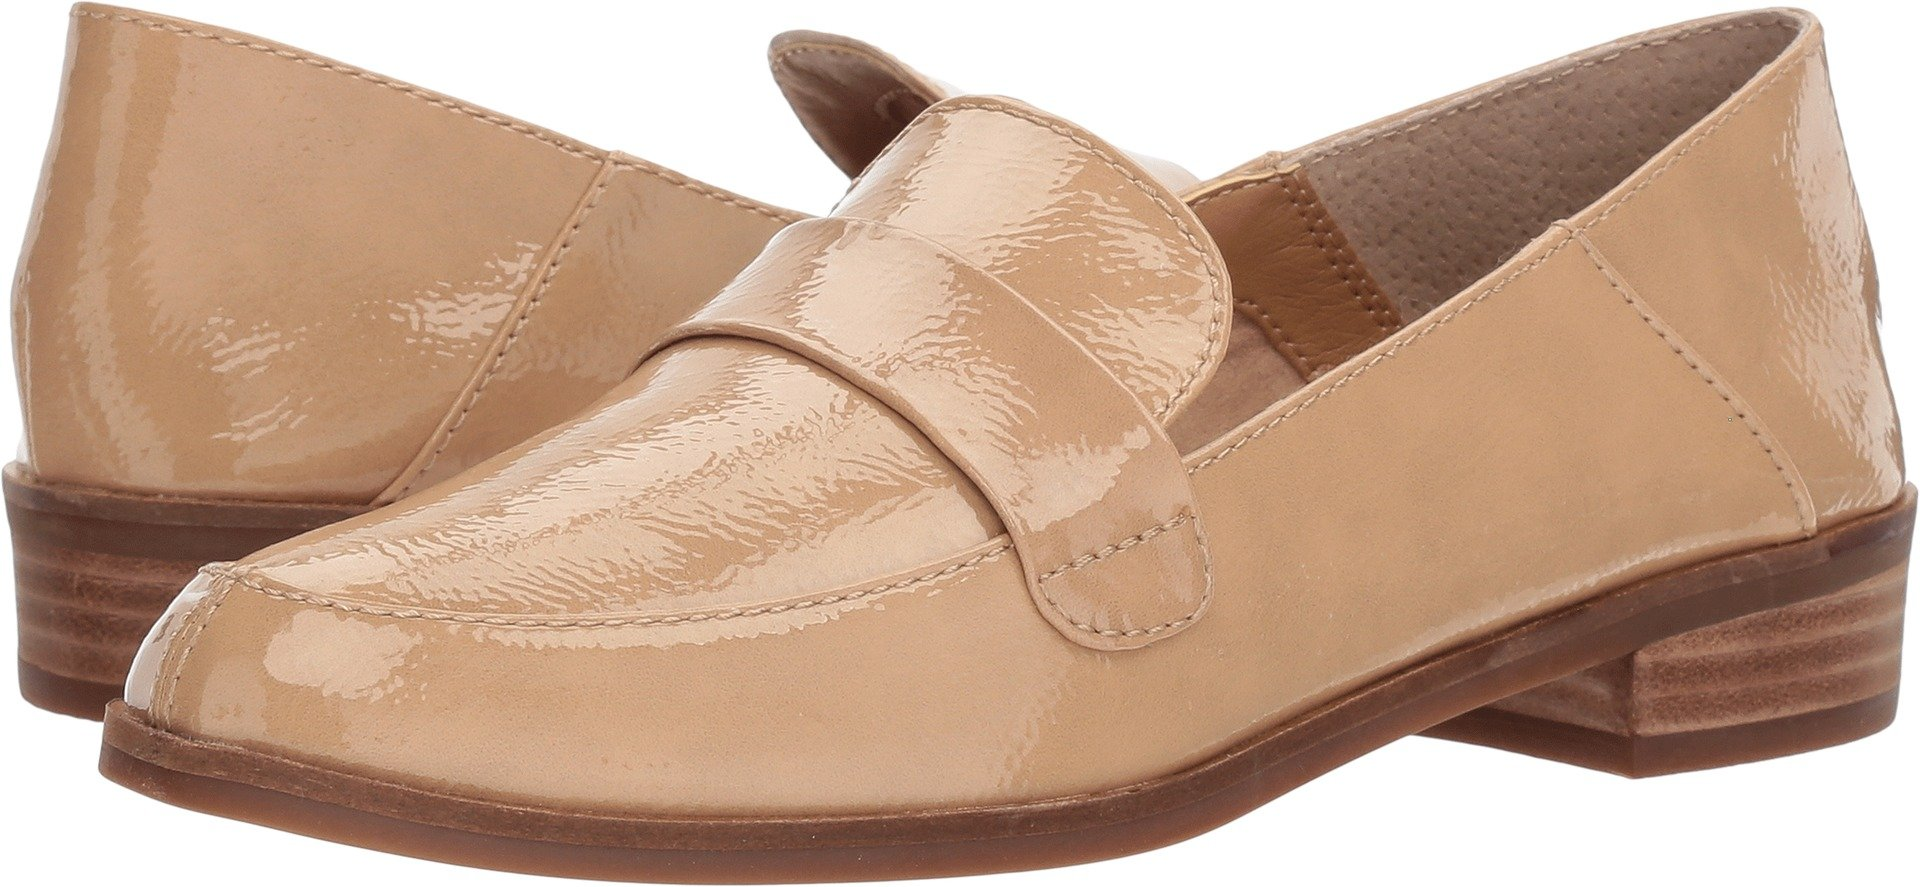 Lucky Brand Women's Chantara Loafer Flat, Nude, 7 M US